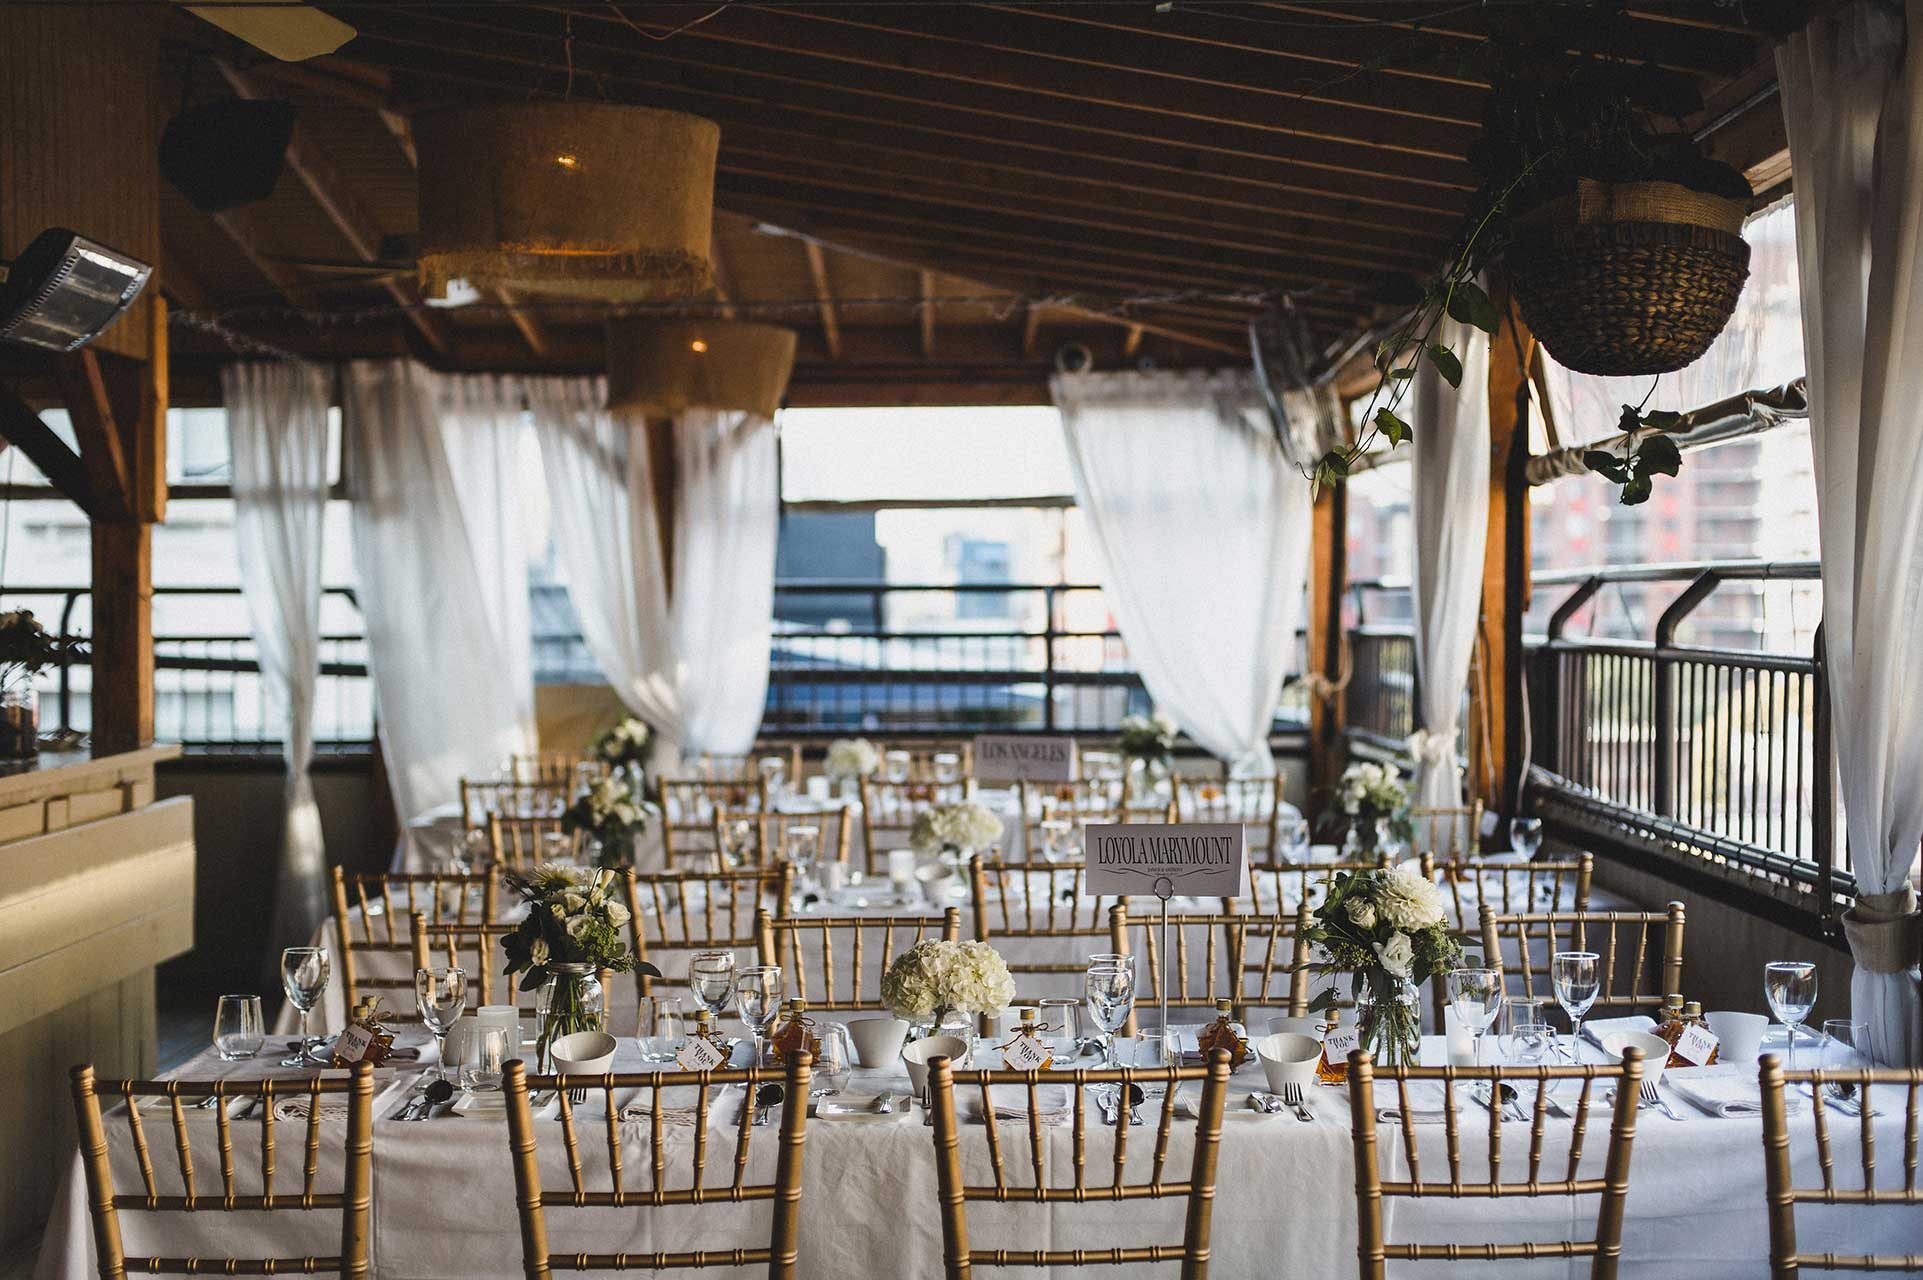 Outdoor Wedding Venues Toronto - Wedding Reception - Rooftop Terrace - Summer Weddings